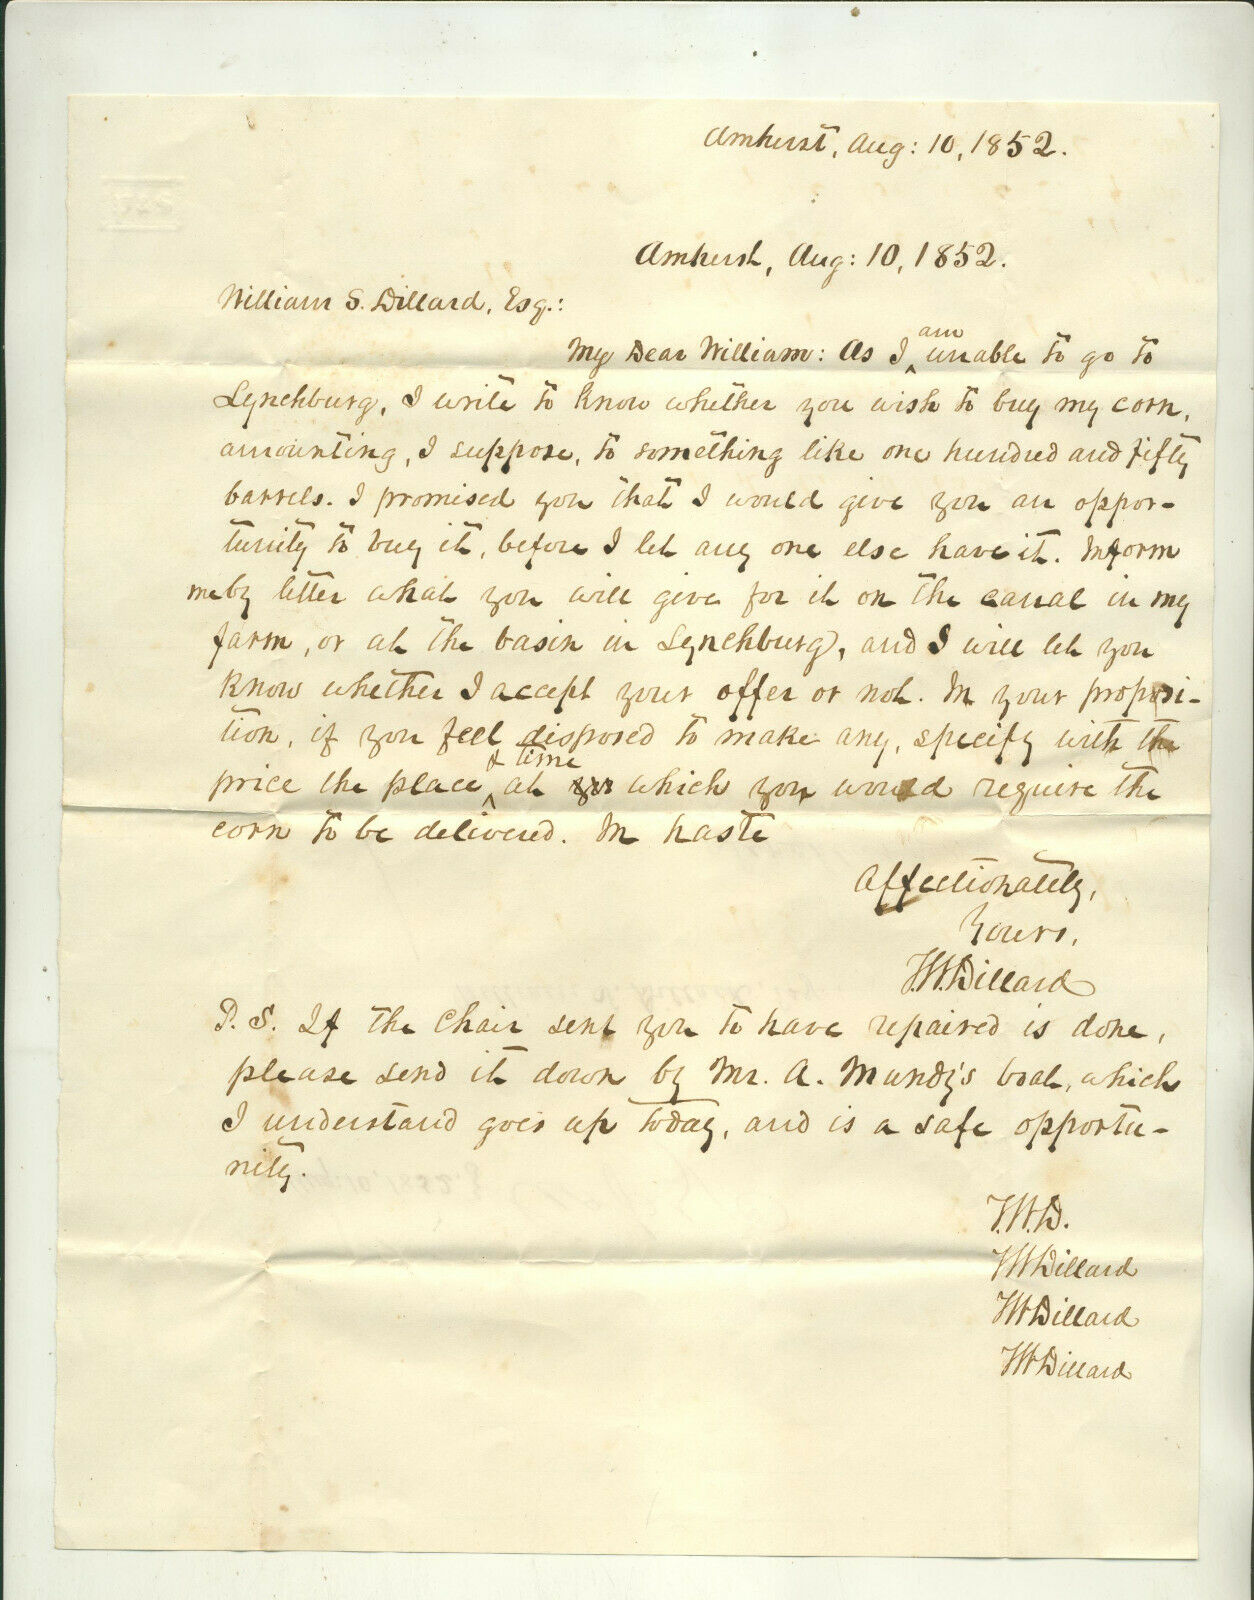 1852 WRITERS COPY LETTER TERISHA DILLARD AMHERST VA TO WILLIAM DILLARD LYNCHBURG - $4.99